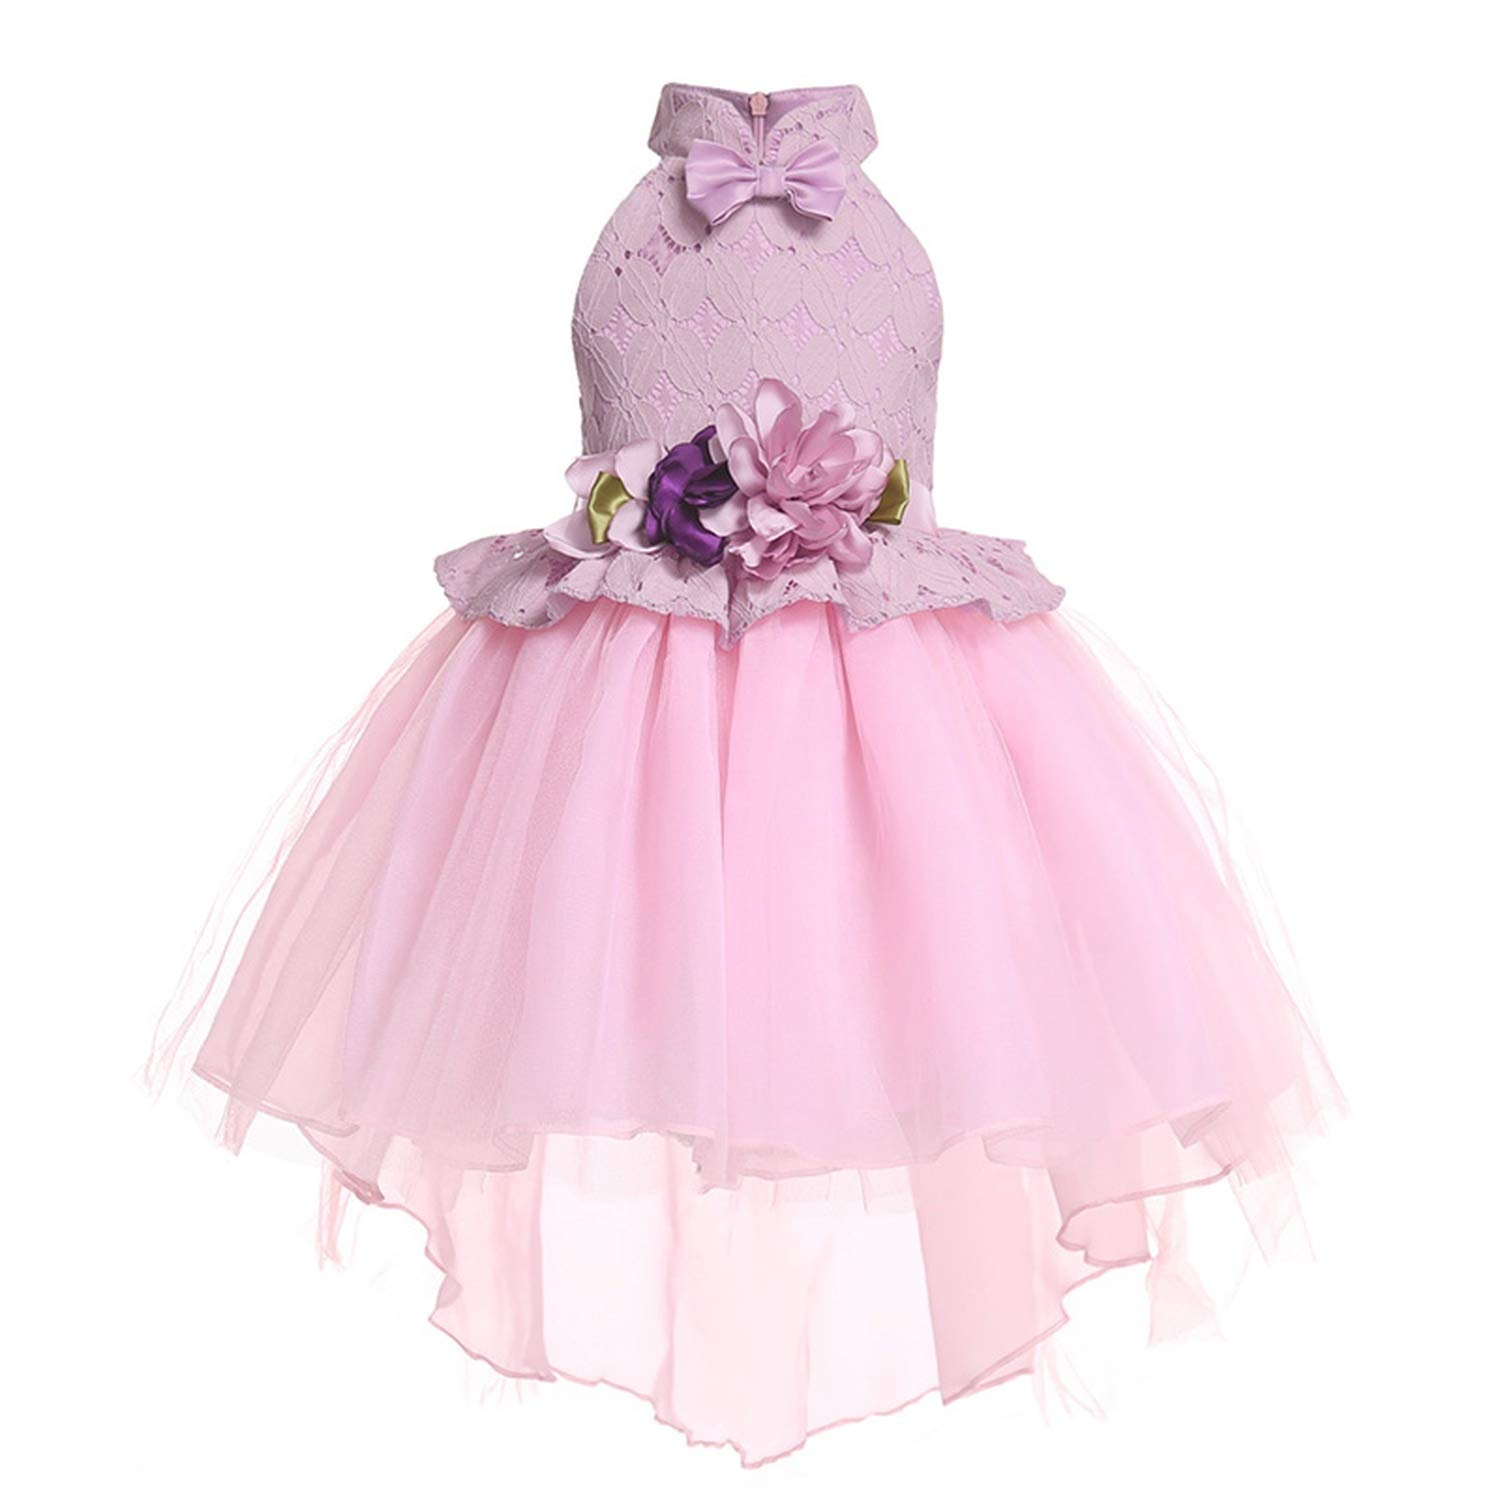 Girls Dress Summer Kids Dresses for Girl Princess Children Baby Tutu 2 3 4 5 6 7 8 9 10 Years,As Picture10,9 by Gooding Day (Image #6)